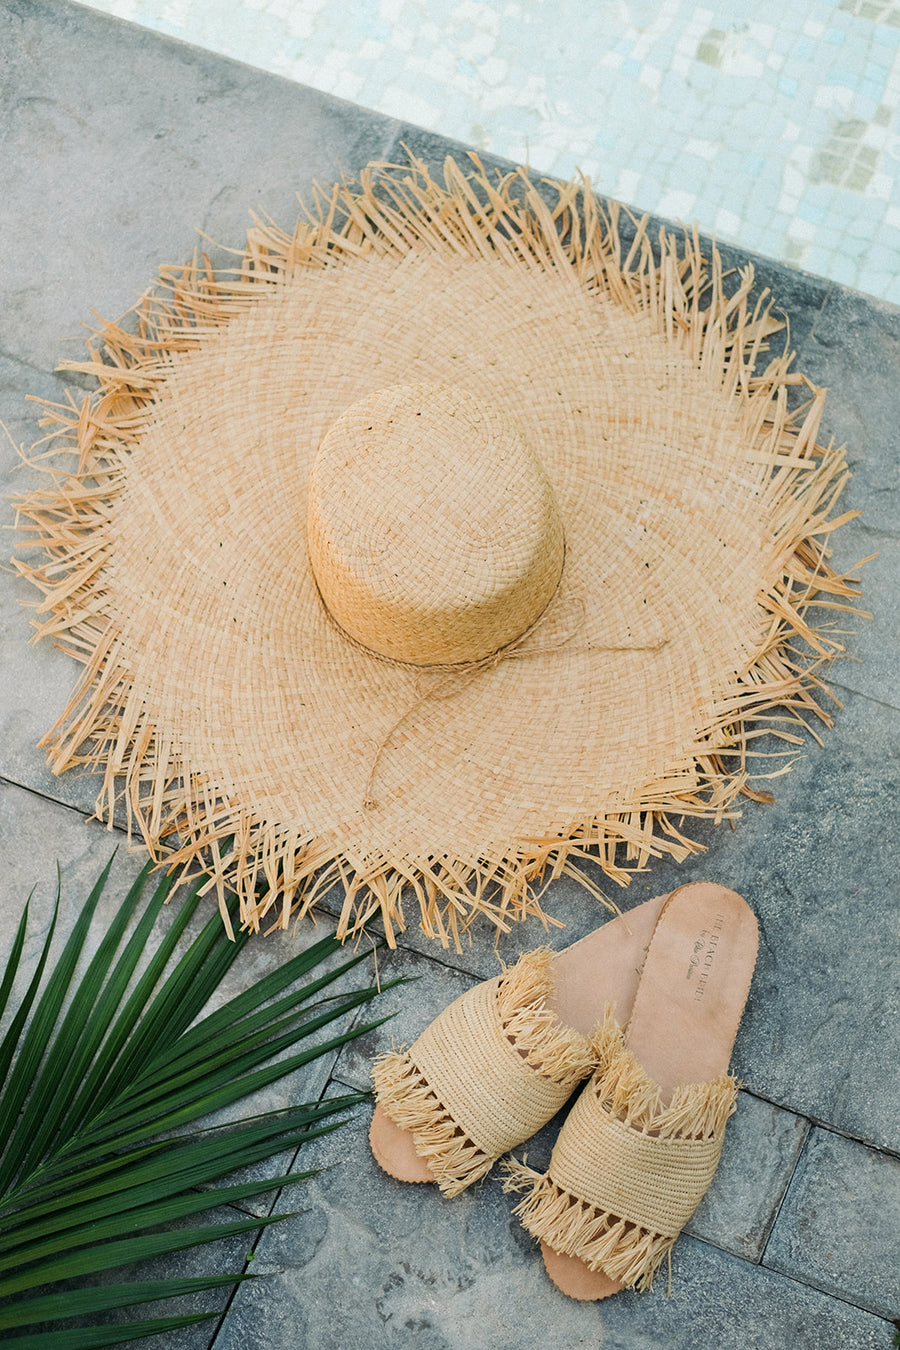 Turks Wide Brimmed Frayed Edge Sunhat - The Beach Bride by Chic Parisien, a destination for beach weddings, bachelorettes and honeymoons